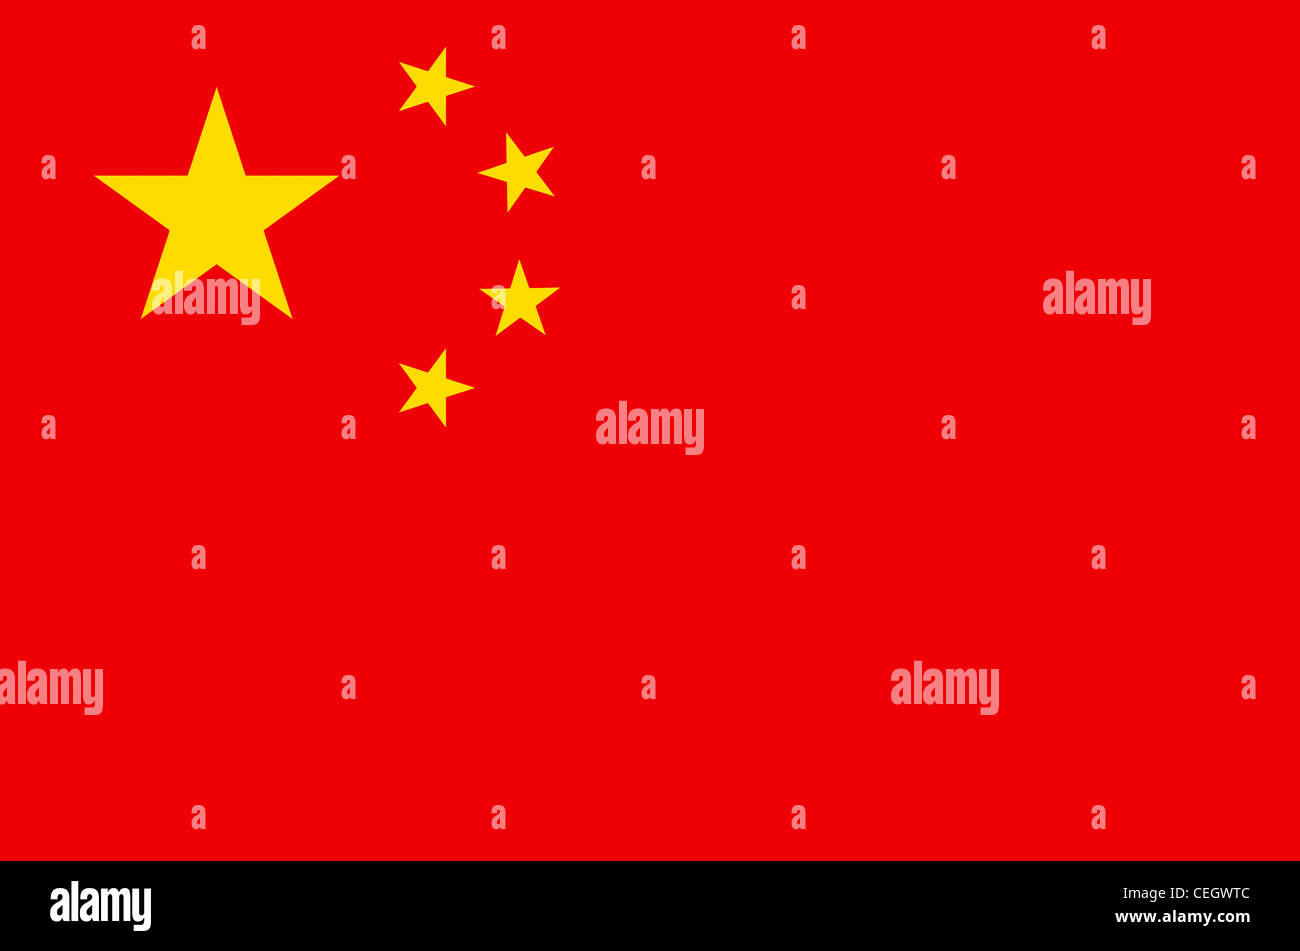 National flag of the People's Republic of China. - Stock Image